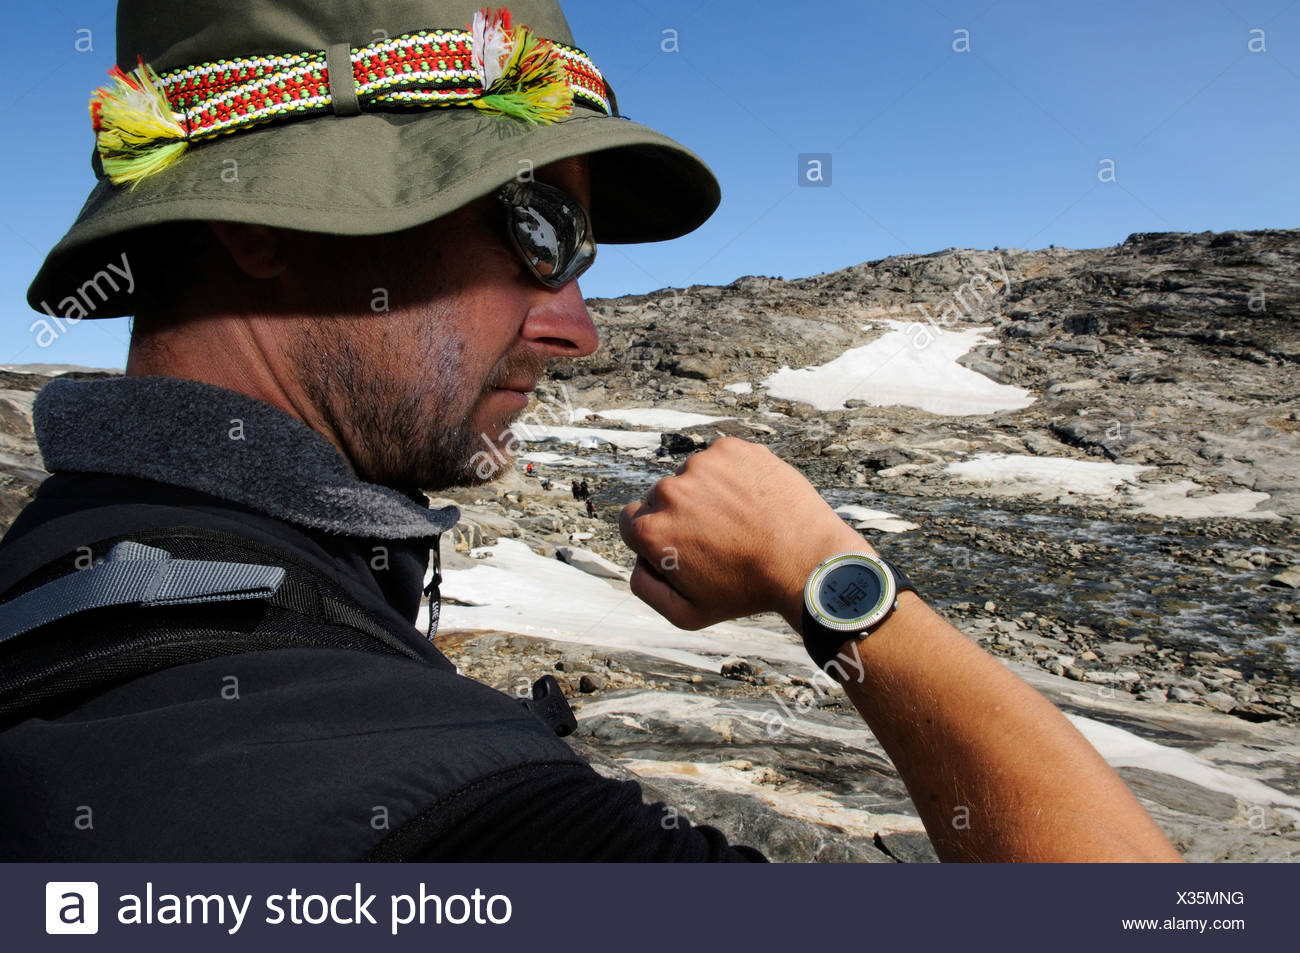 Man during an altitude check with a multifunction watch, hike, trekking in the Hundefjord, East Greenland, Greenland - Stock Image